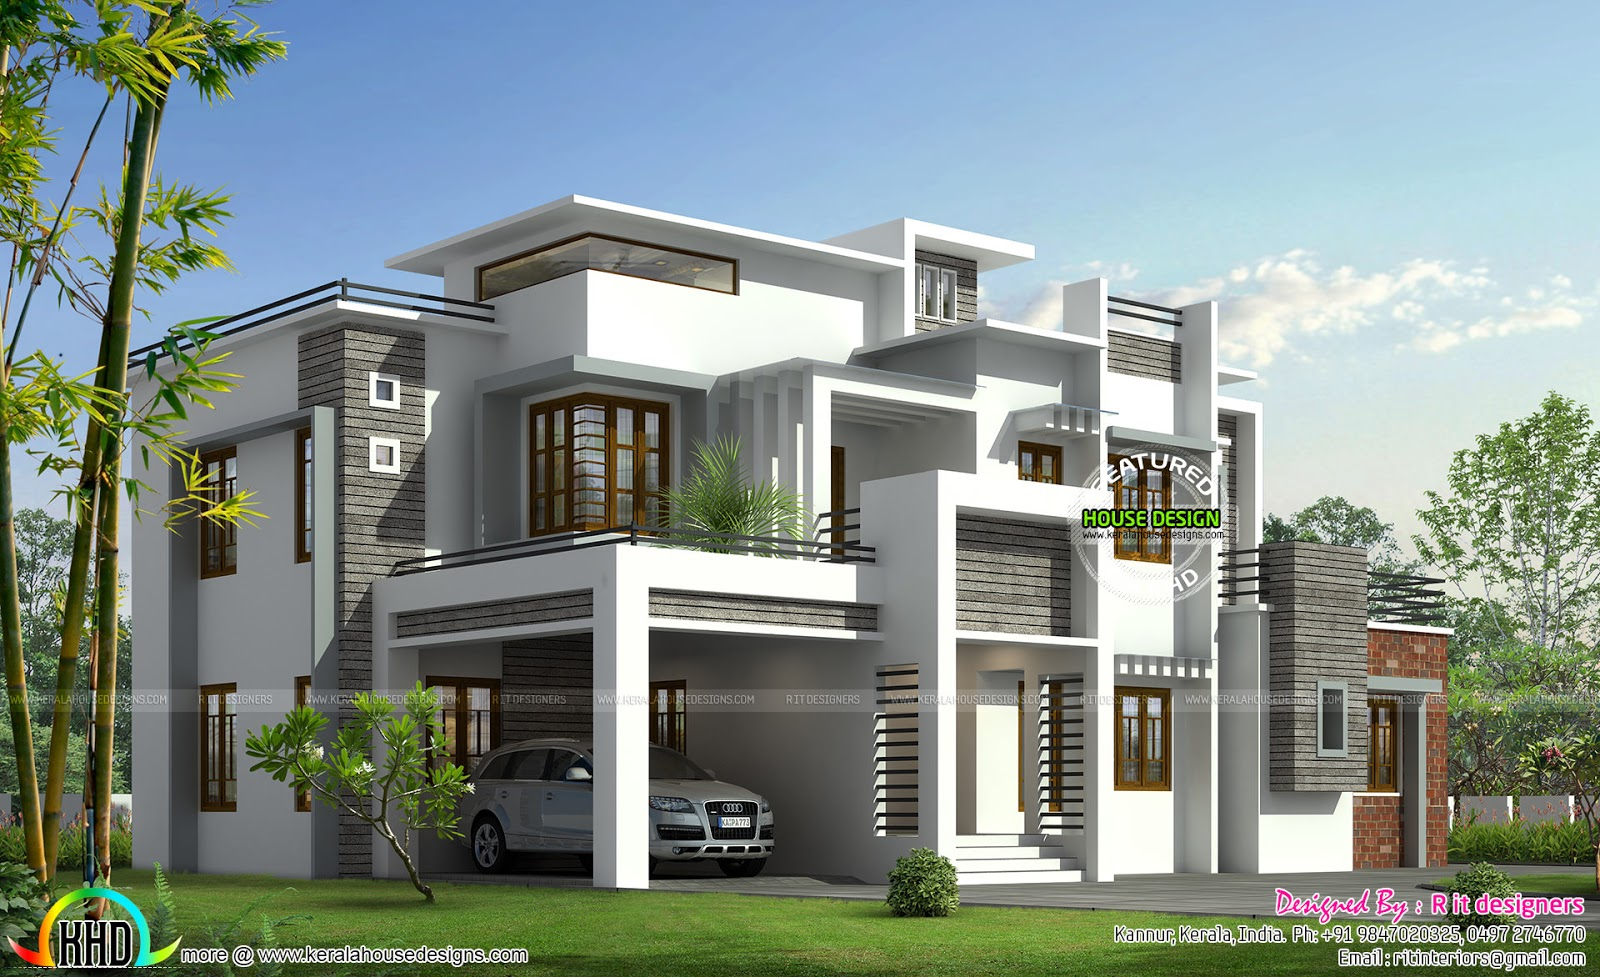 Box model contemporary house kerala home design and for Contemporary model house